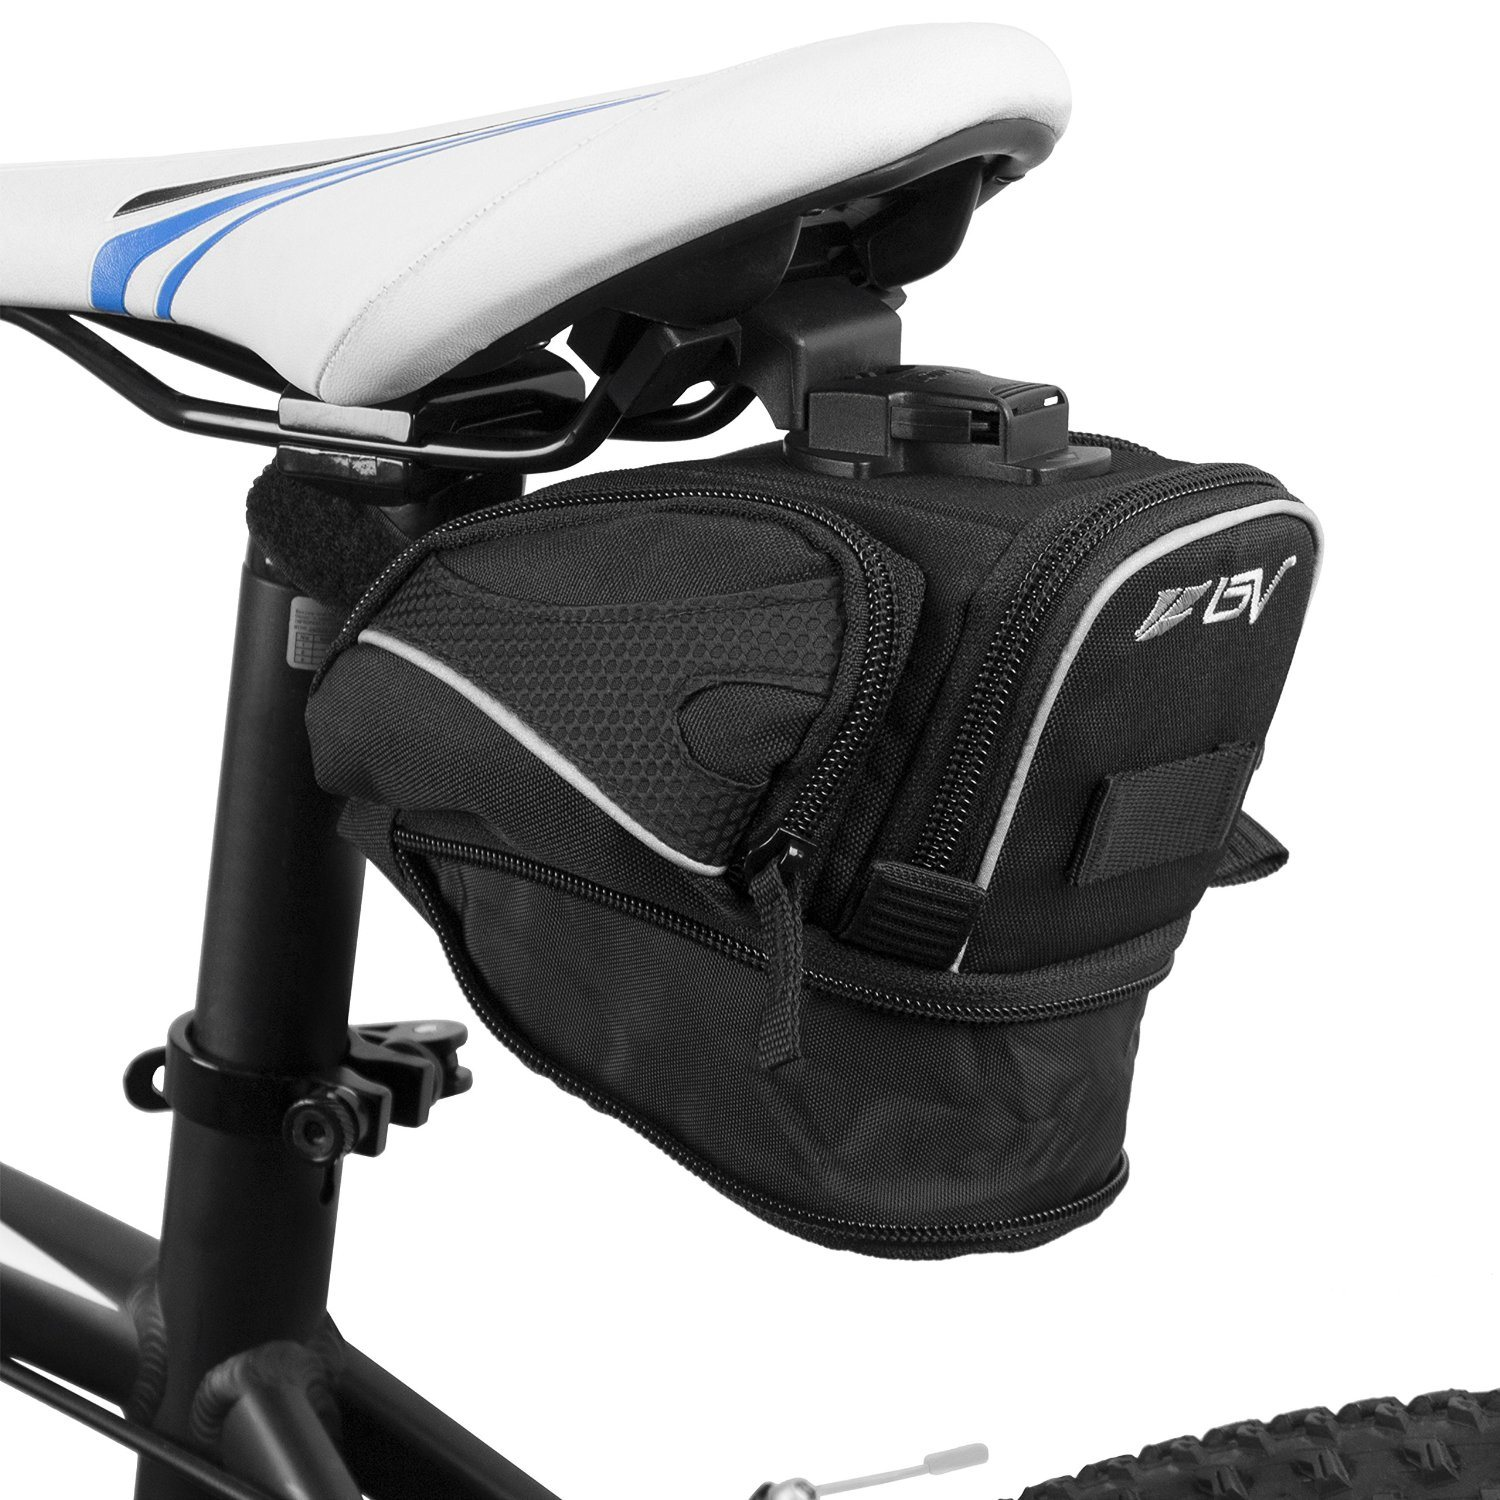 Outdoor Bicycle Clip-on Expandable Saddle Seat Bag